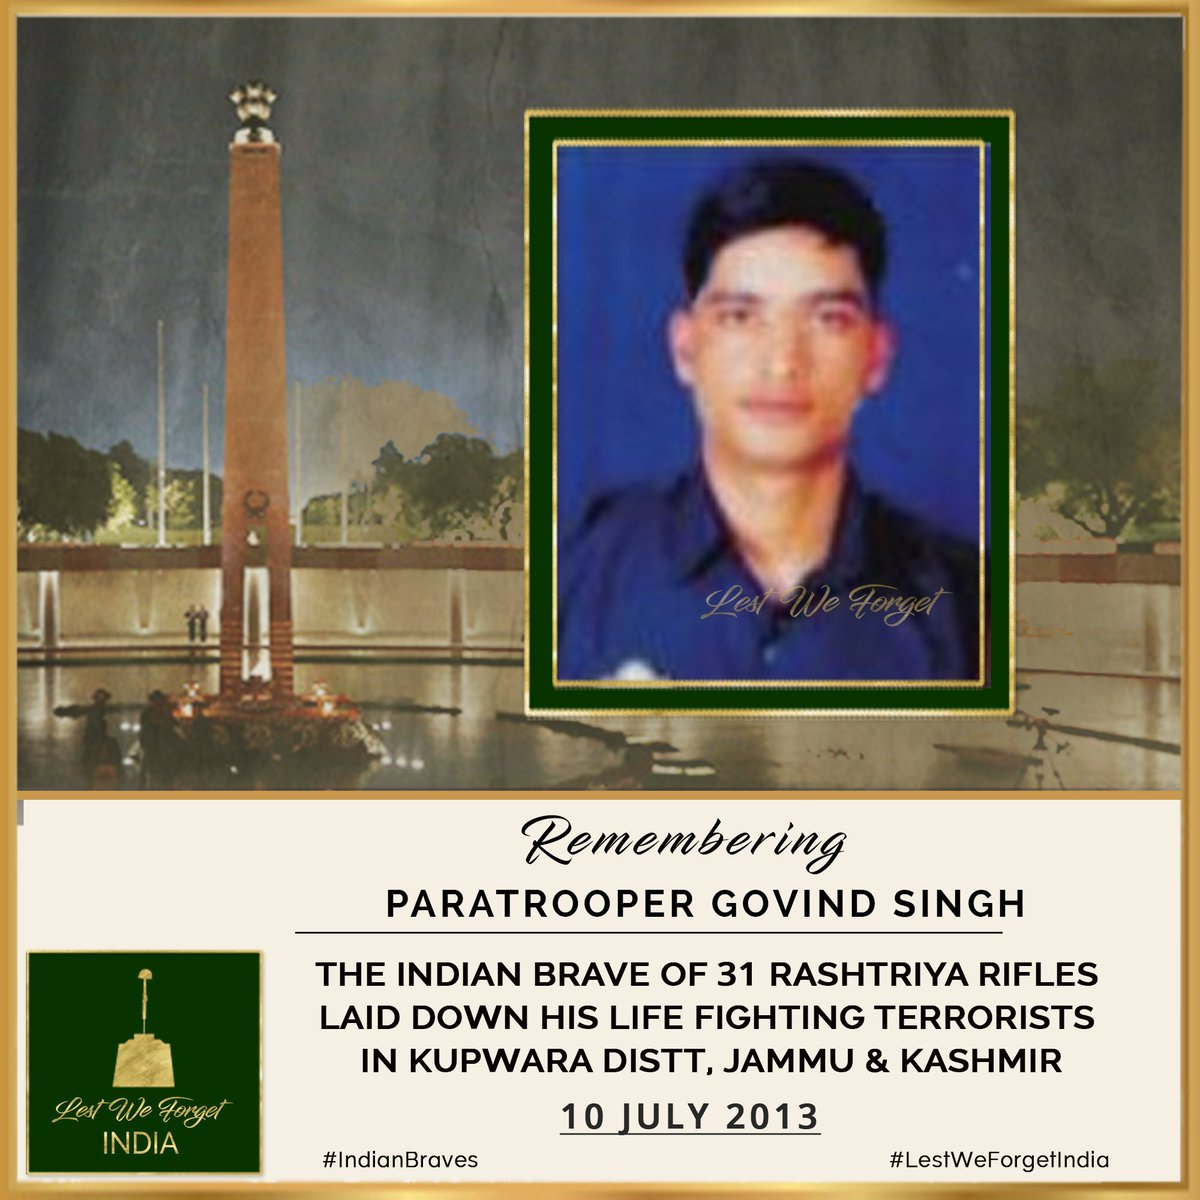 SEVEN yrs ago this #IndianBraves gave his all defending the Nation.   #LestWeForgetIndia🇮🇳 Paratrooper Govind Singh, 31 #RashtriyaRifles made the supreme sacrifice fighting terrorists at Kupwara, J&K #OnThisDay 10 July in 2013.  His service & supreme sacrifice is remembered https://t.co/FfkFstf2aQ